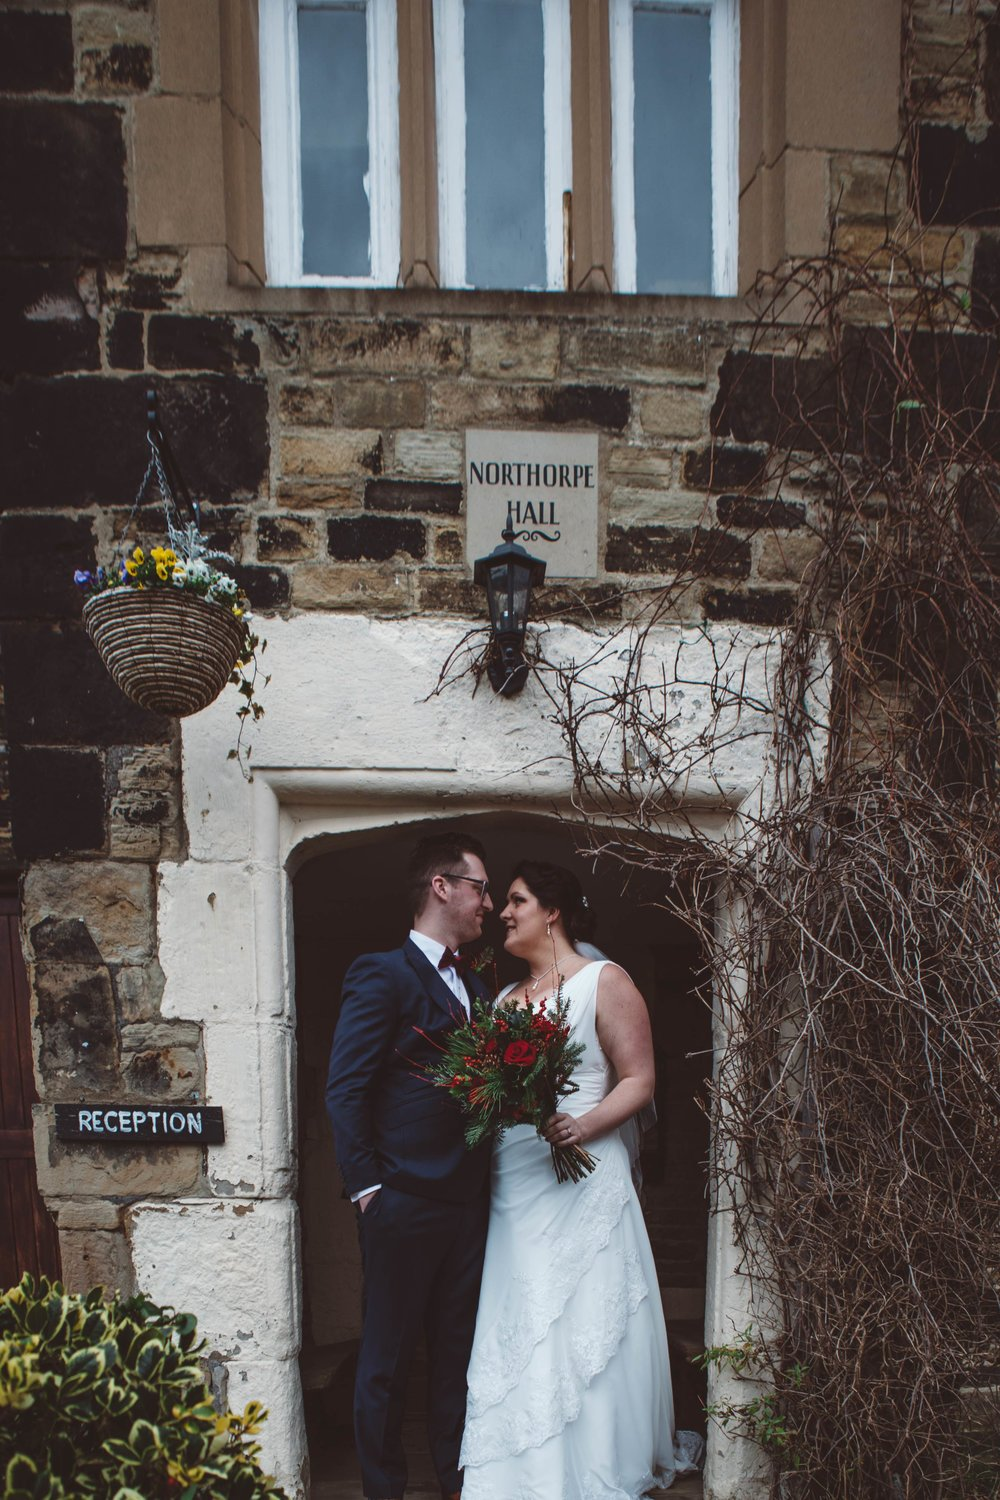 Northorpe-Barn-Wedding-Photography-30.jpg